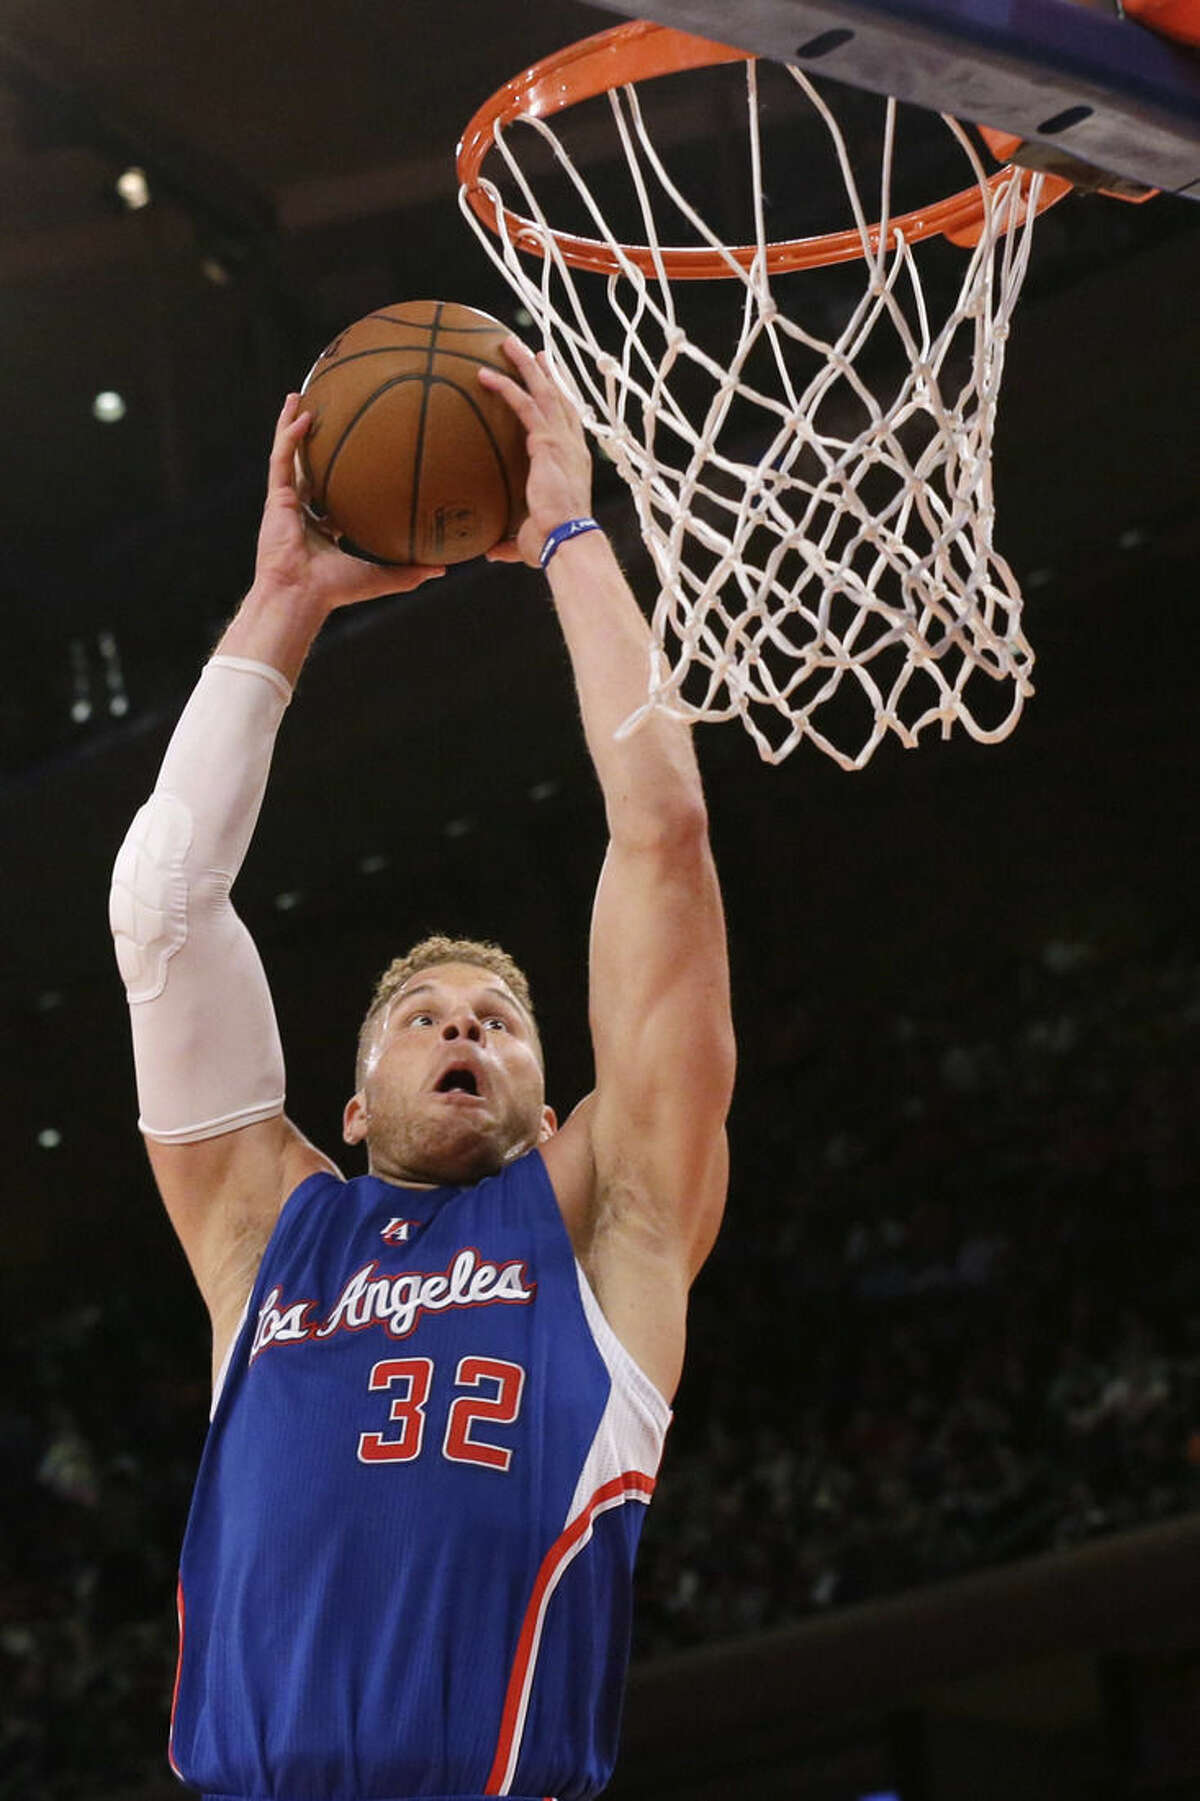 Los Angeles Clippers forward Blake Griffin dunks during the first half of an NBA basketball game against the New York Knicks, Wednesday, March 25, 2015, at Madison Square Garden in New York. (AP Photo/Mary Altaffer)